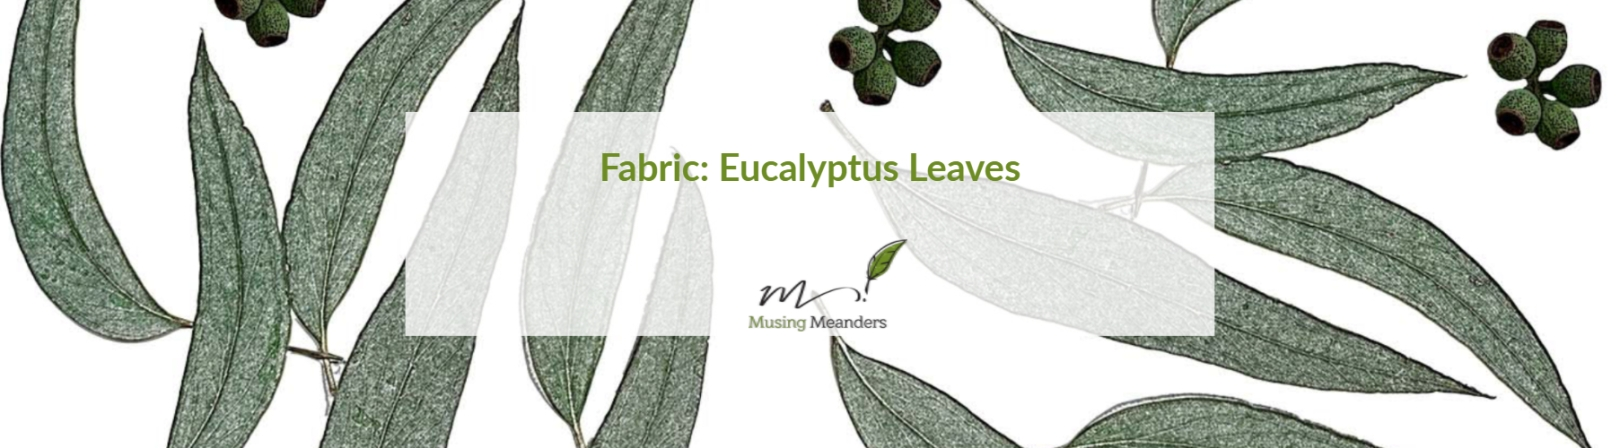 eucalyptus-leaves-fabric-design-kisa-g-hunter-musing-meanders